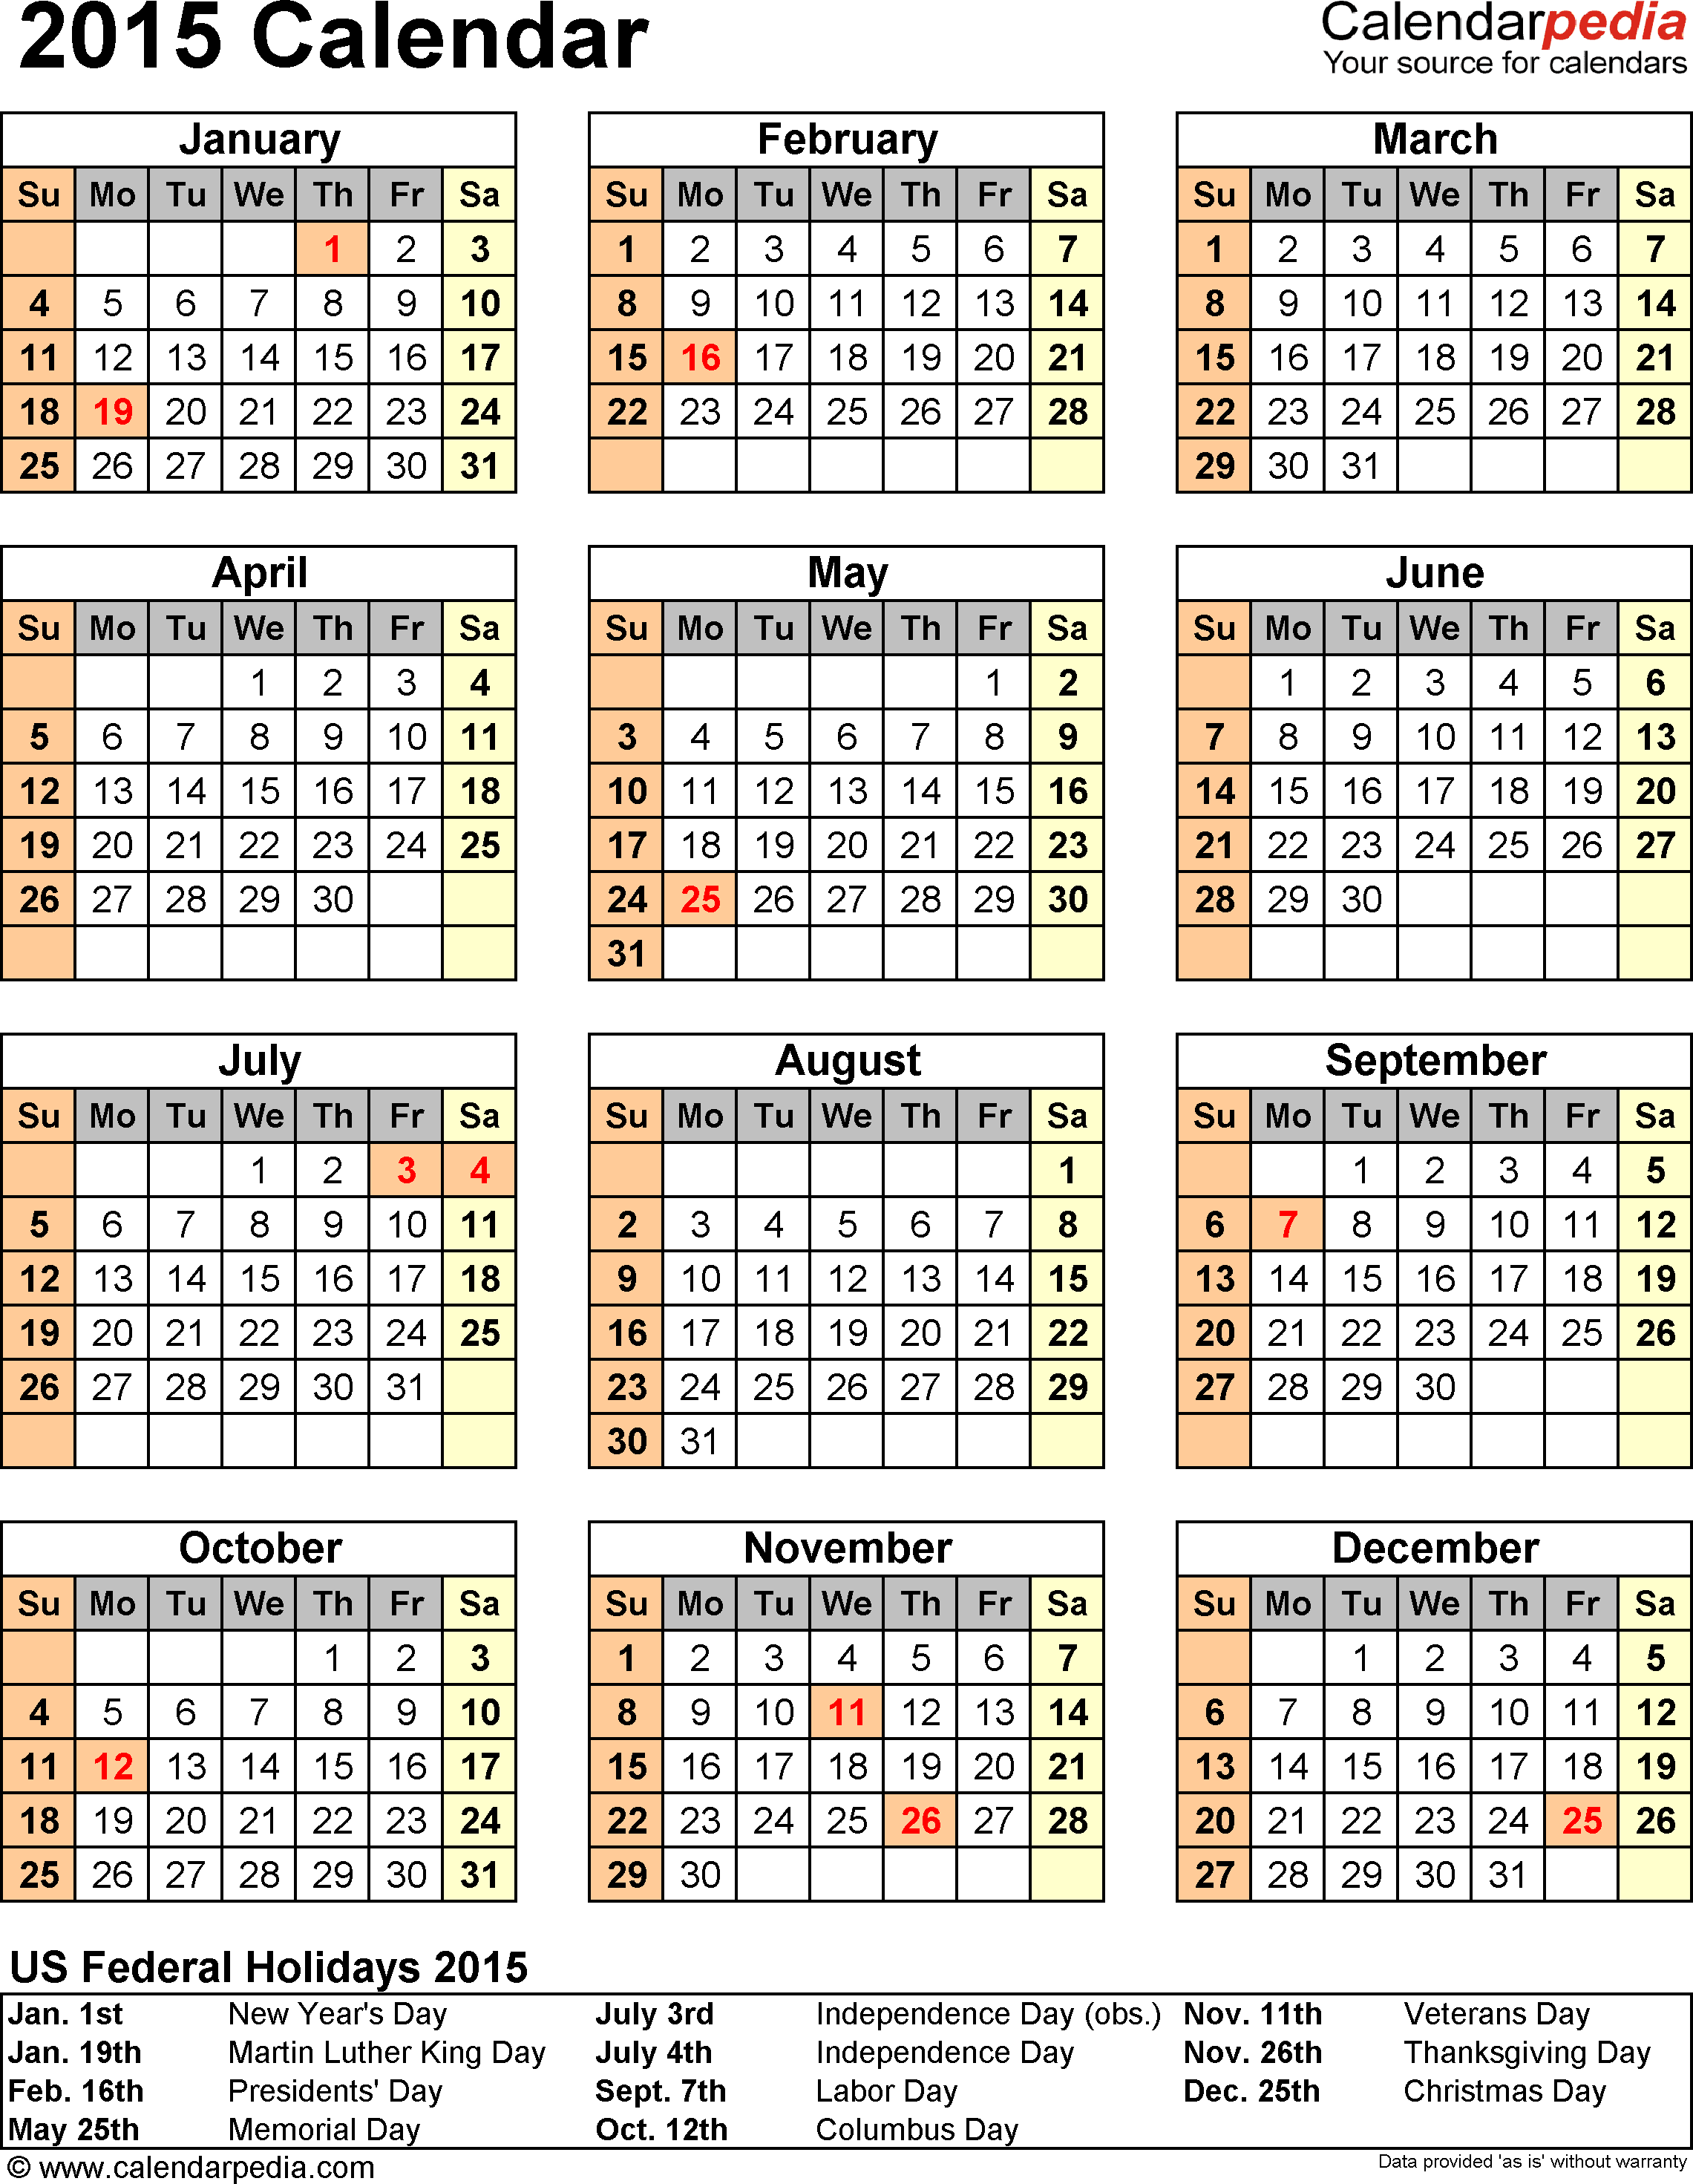 Download Excel template for 2015 calendar template 11: portrait orientation, 1 page, with US federal holidays 2015, paper format: US letter